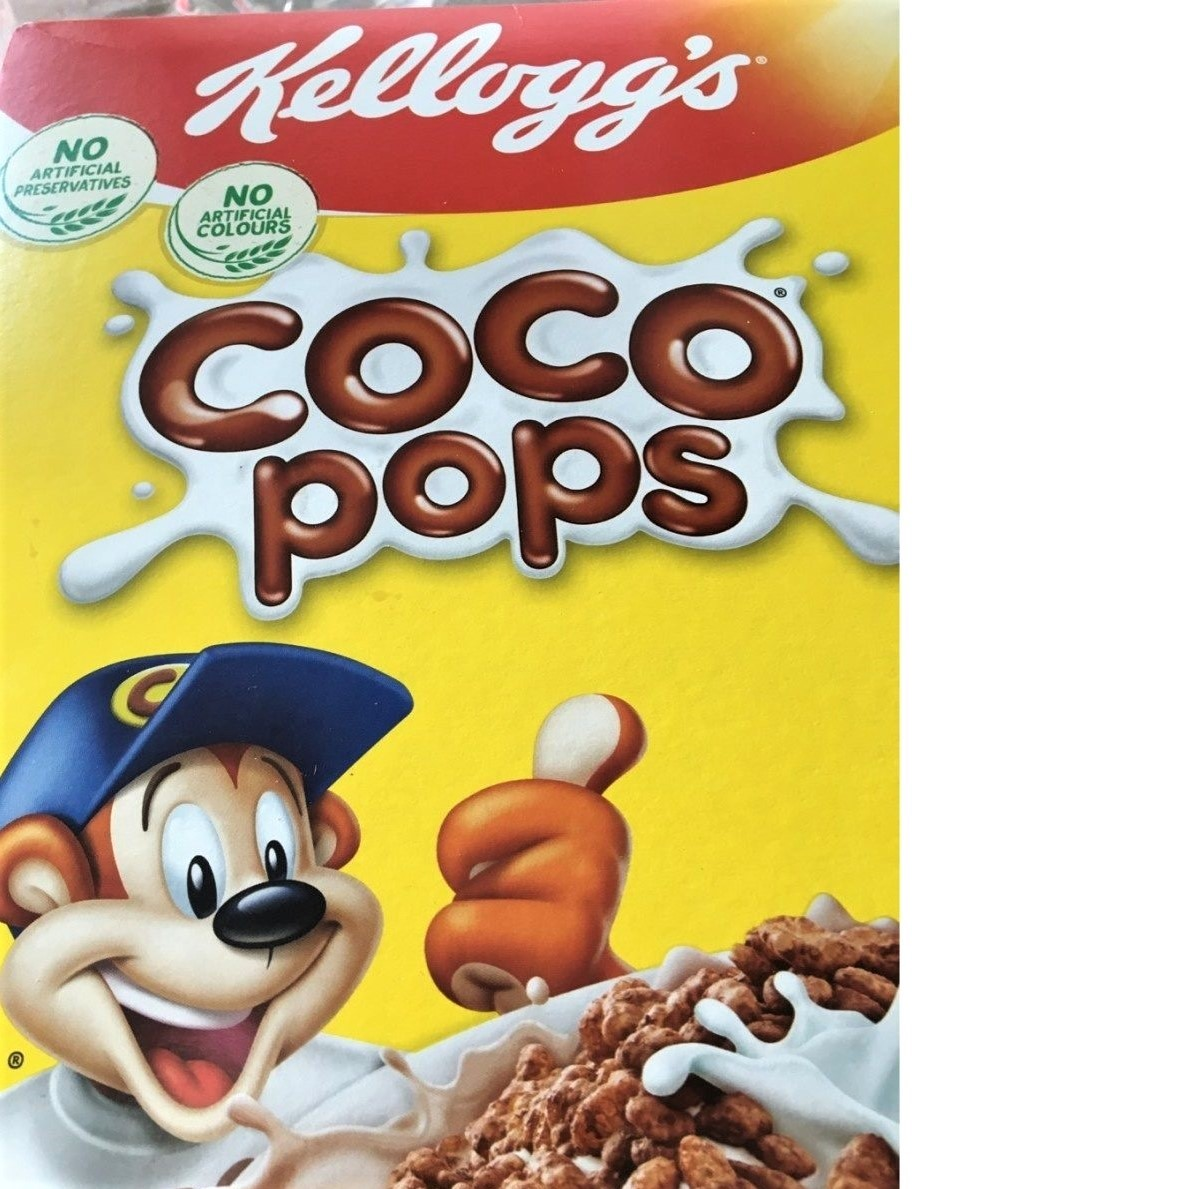 Coco Pops by Kellogg's